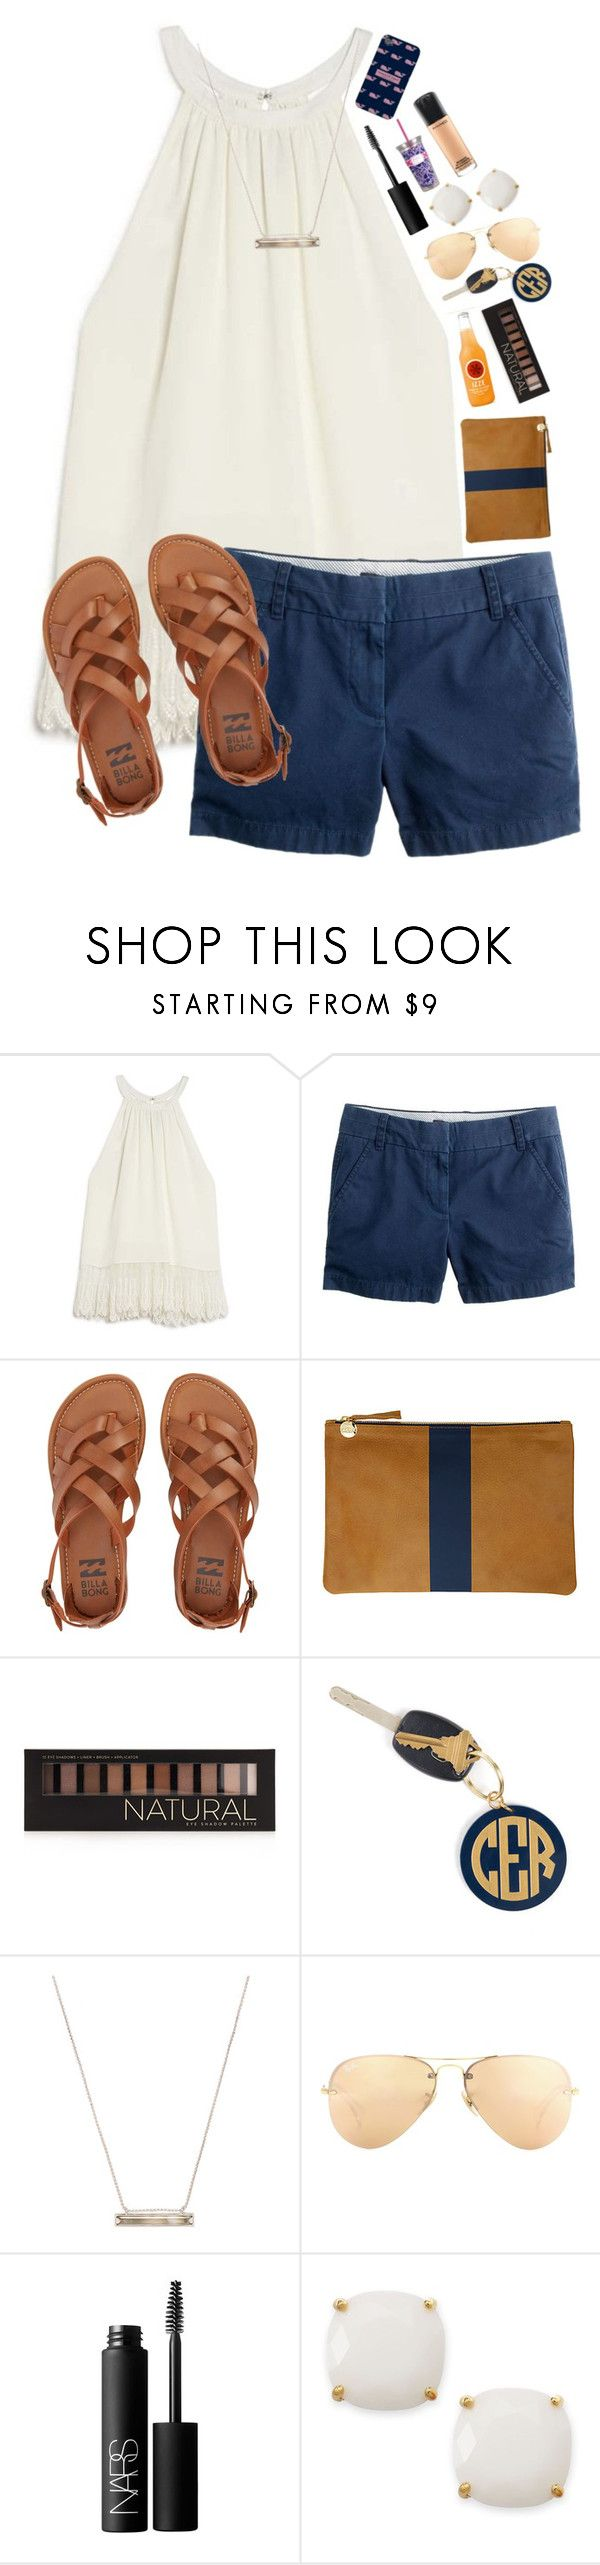 """""""Going to Florida this summer!!"""" by lacrosse-19 ❤ liked on Polyvore featuring OTTE, J.Crew, Billabong, Clare V., Forever 21, Hartford, Vineyard Vines, Kendra Scott, Ray-Ban and NARS Cosmetics"""